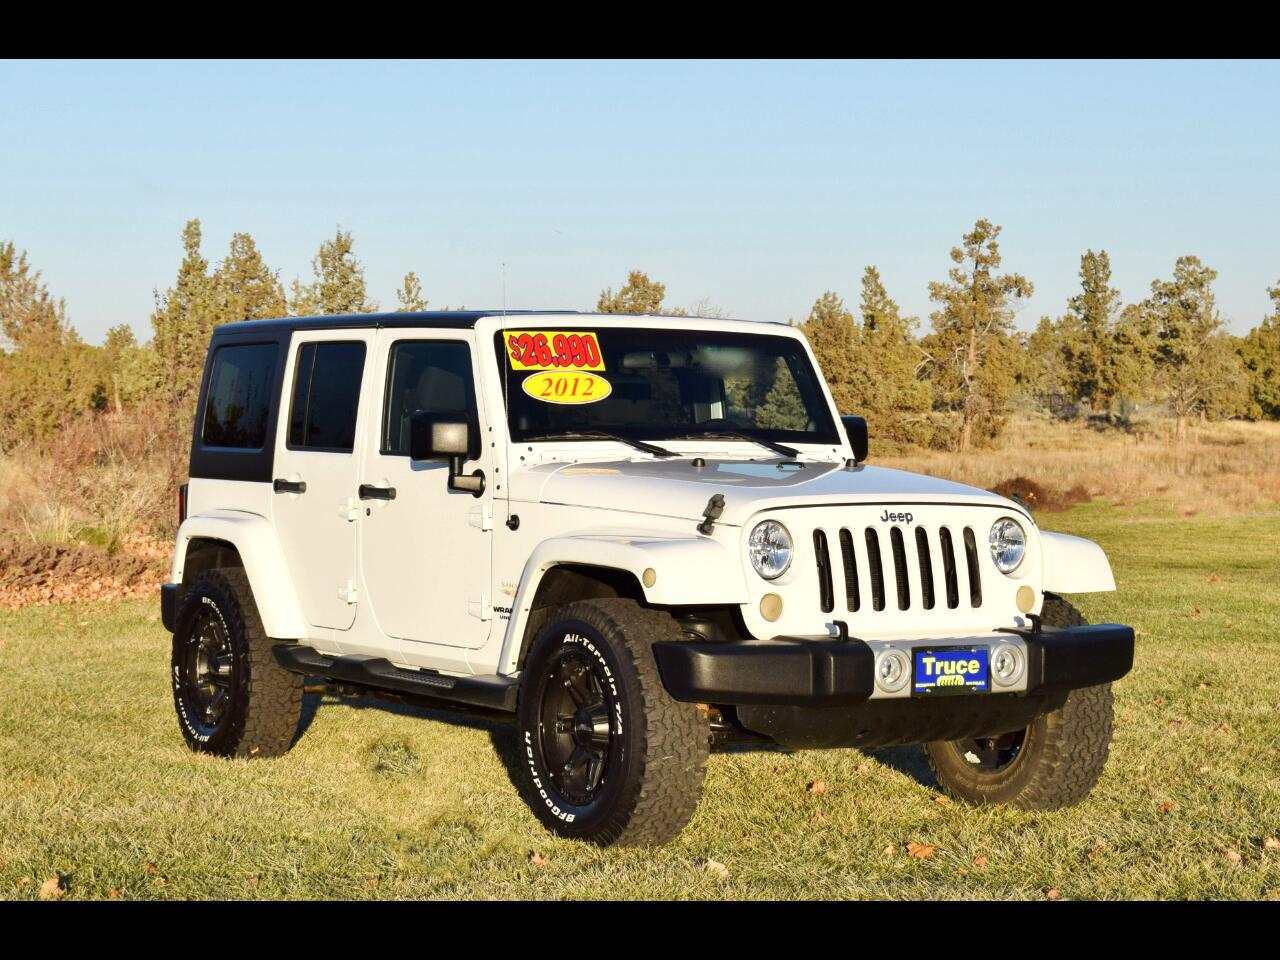 2012 Jeep Wrangler Unlimited 4WD 4dr Sahara**LOW MILES**